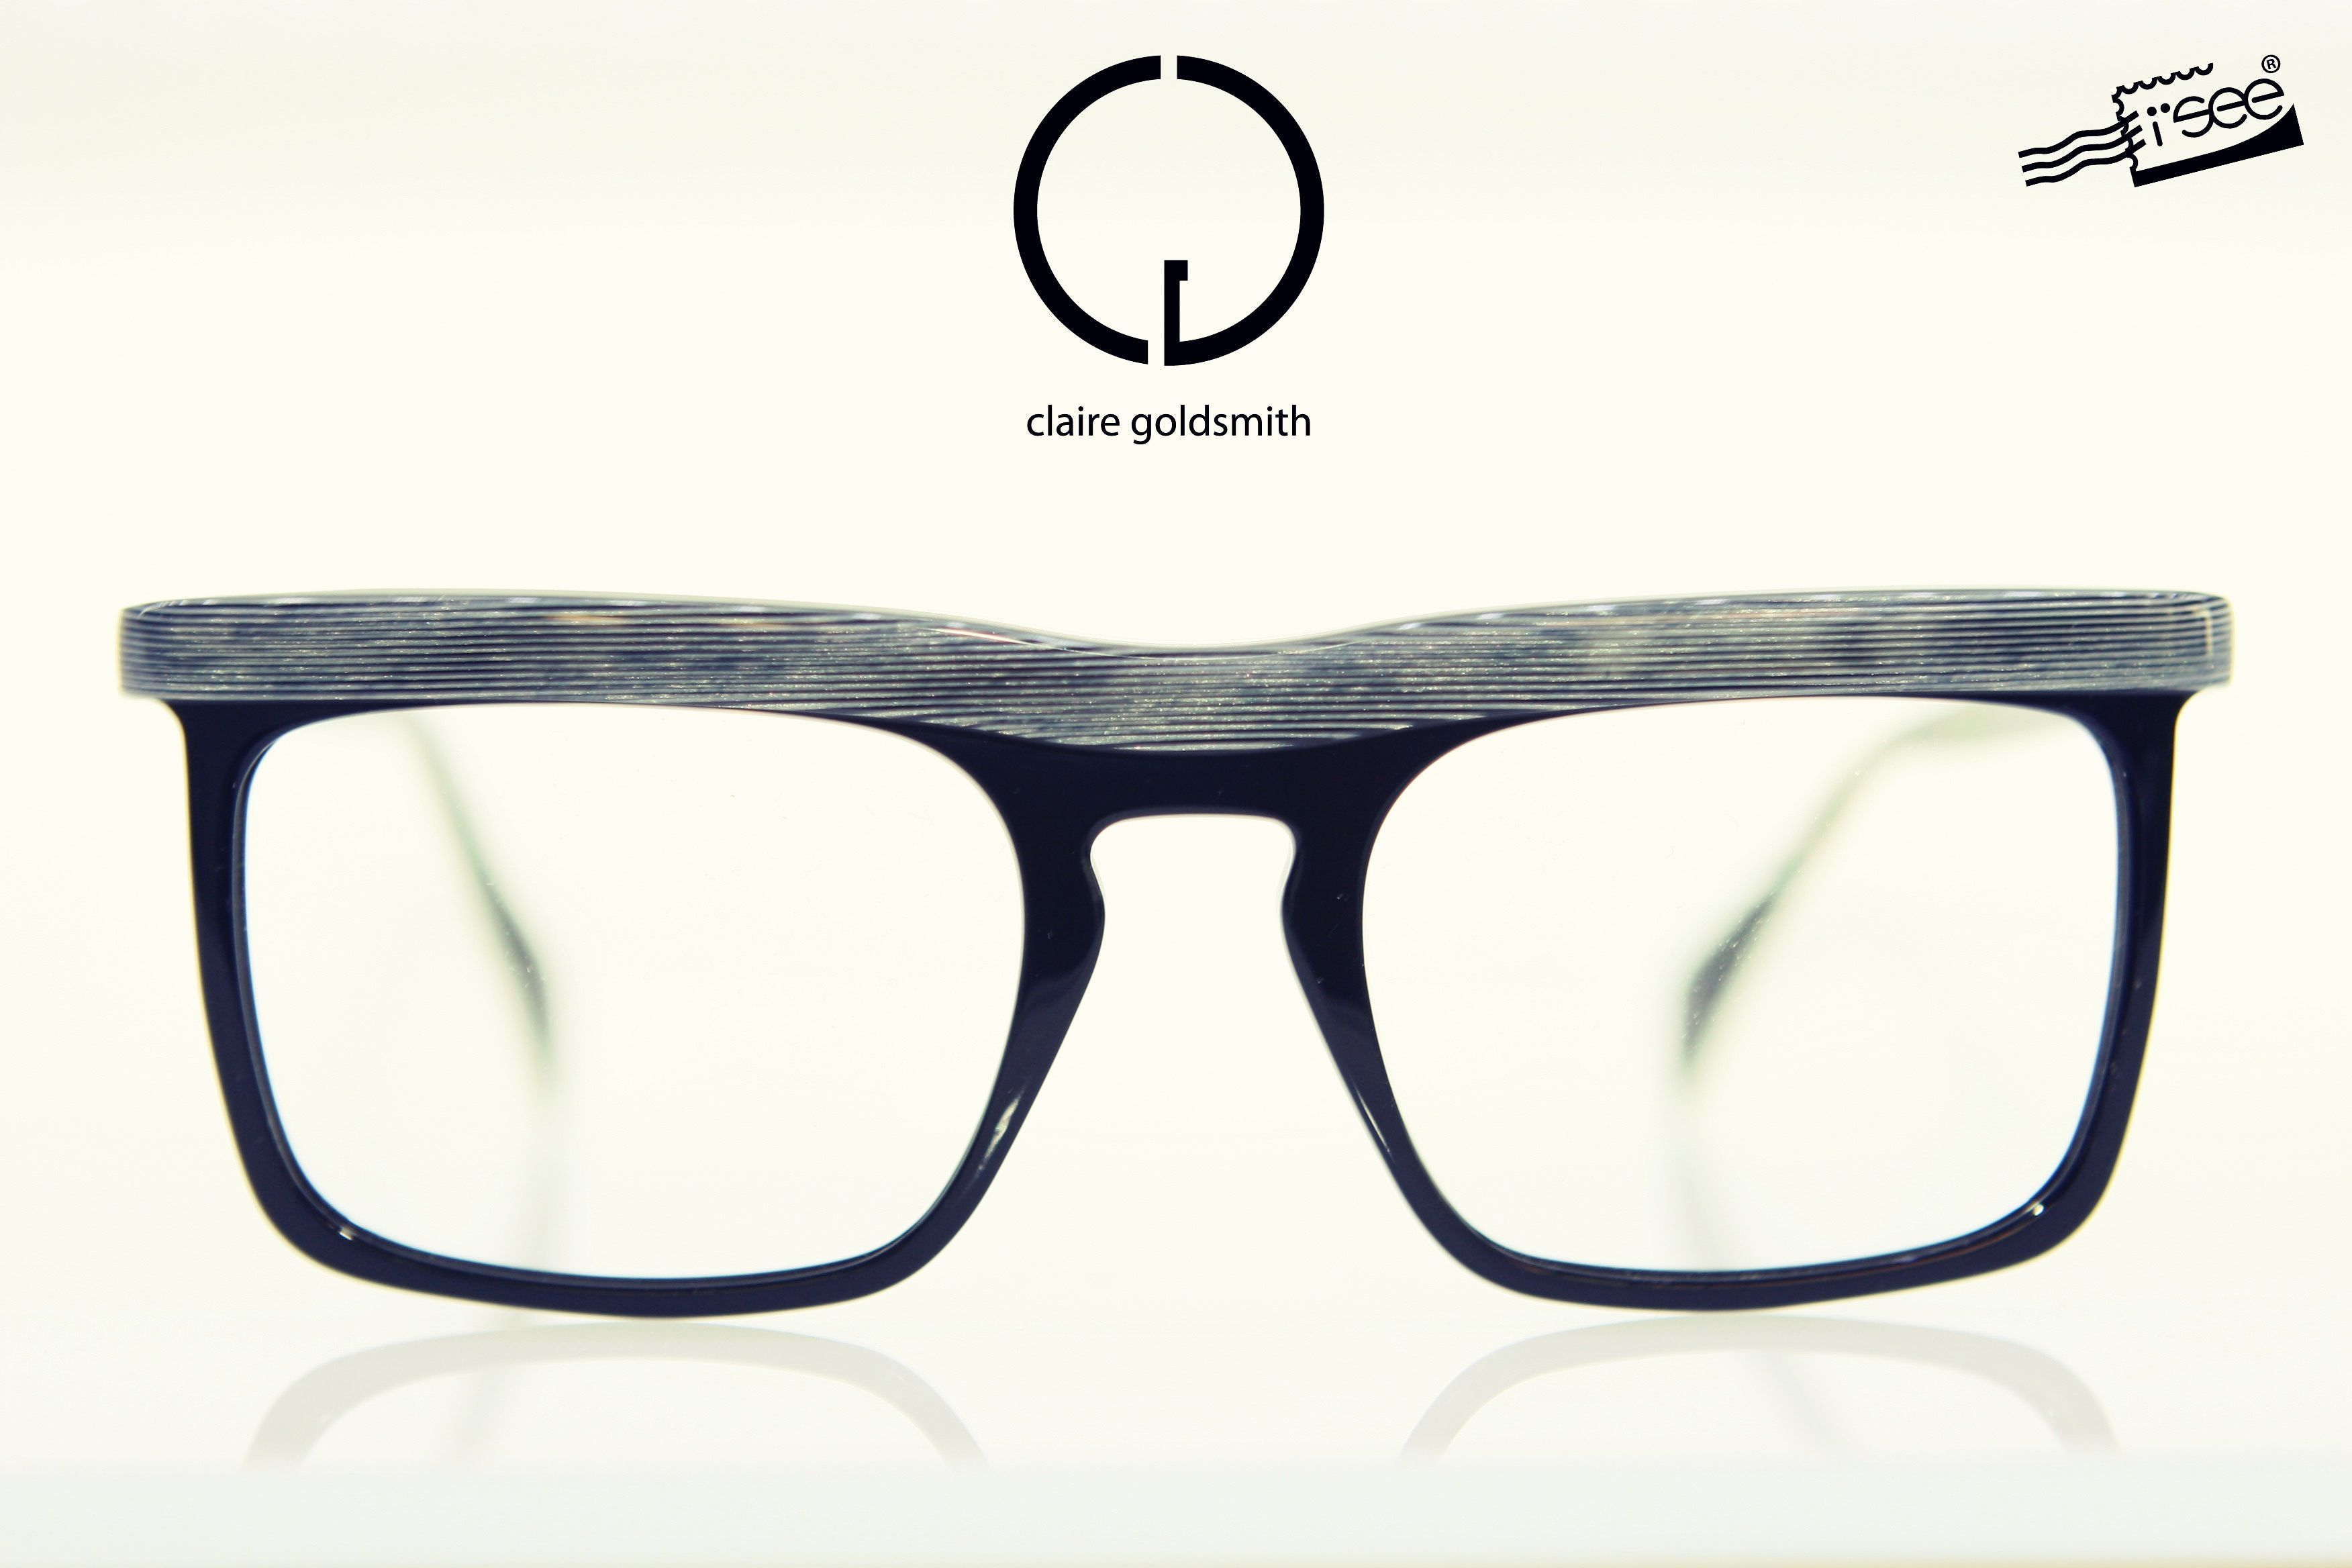 05e7243eb15f Claire Goldsmith - London Miller  Suzy Mitchell Fellow Goldsmith  ottica  isee  eyewear  eyeglasses